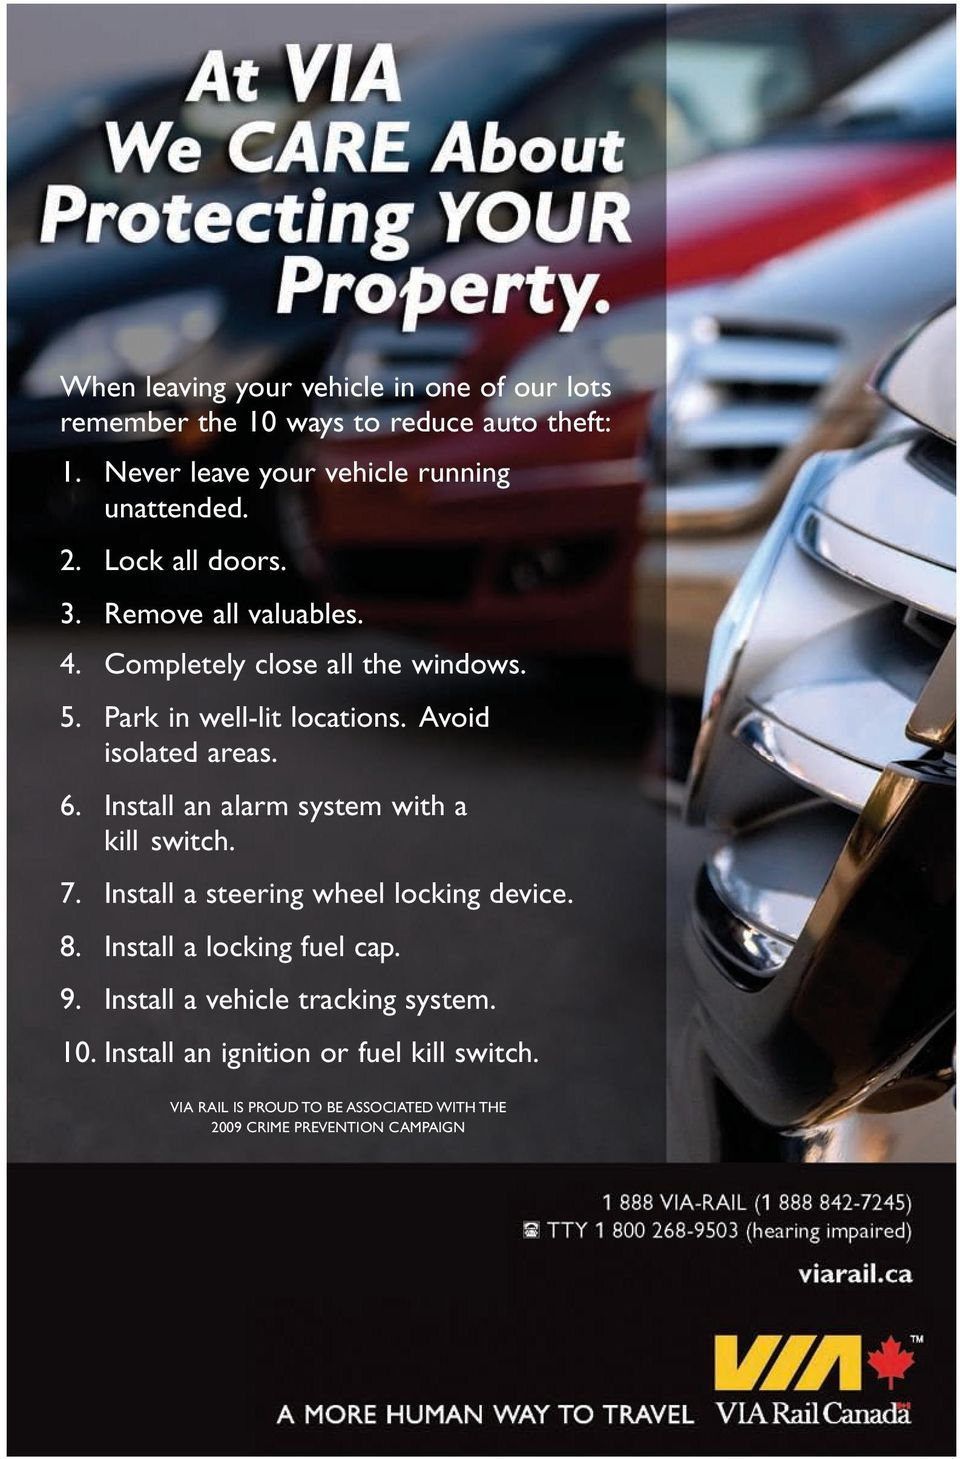 Install an alarm system with a kill switch. 7. Install a steering wheel locking device. 8. Install a locking fuel cap. 9.